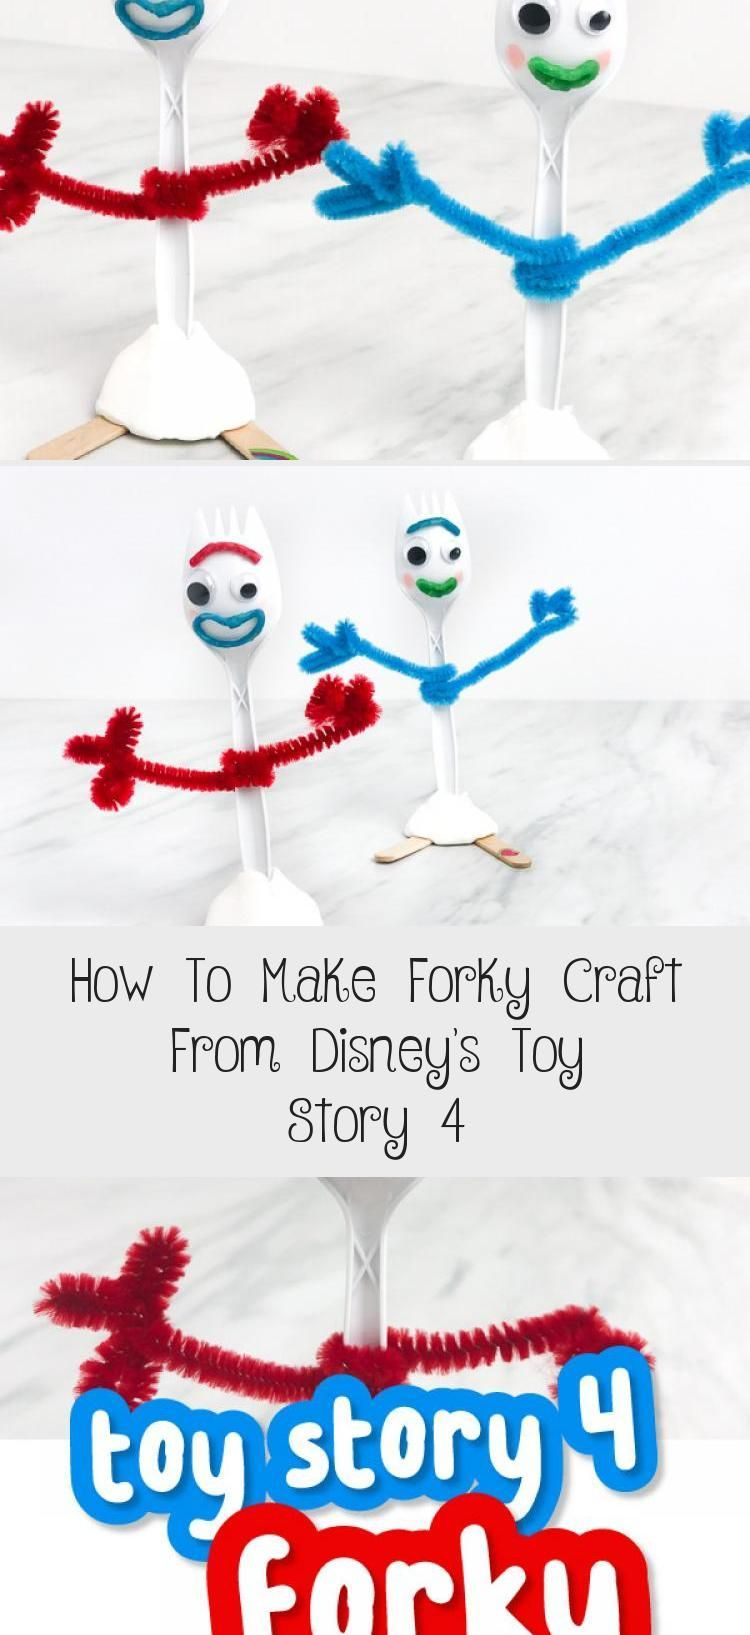 How To Make Forky Craft From Disneys Toy Story 4  Toys This easy DIY Disney craft from Toy Story 4 is a simple craft for kids that s great for preschoo